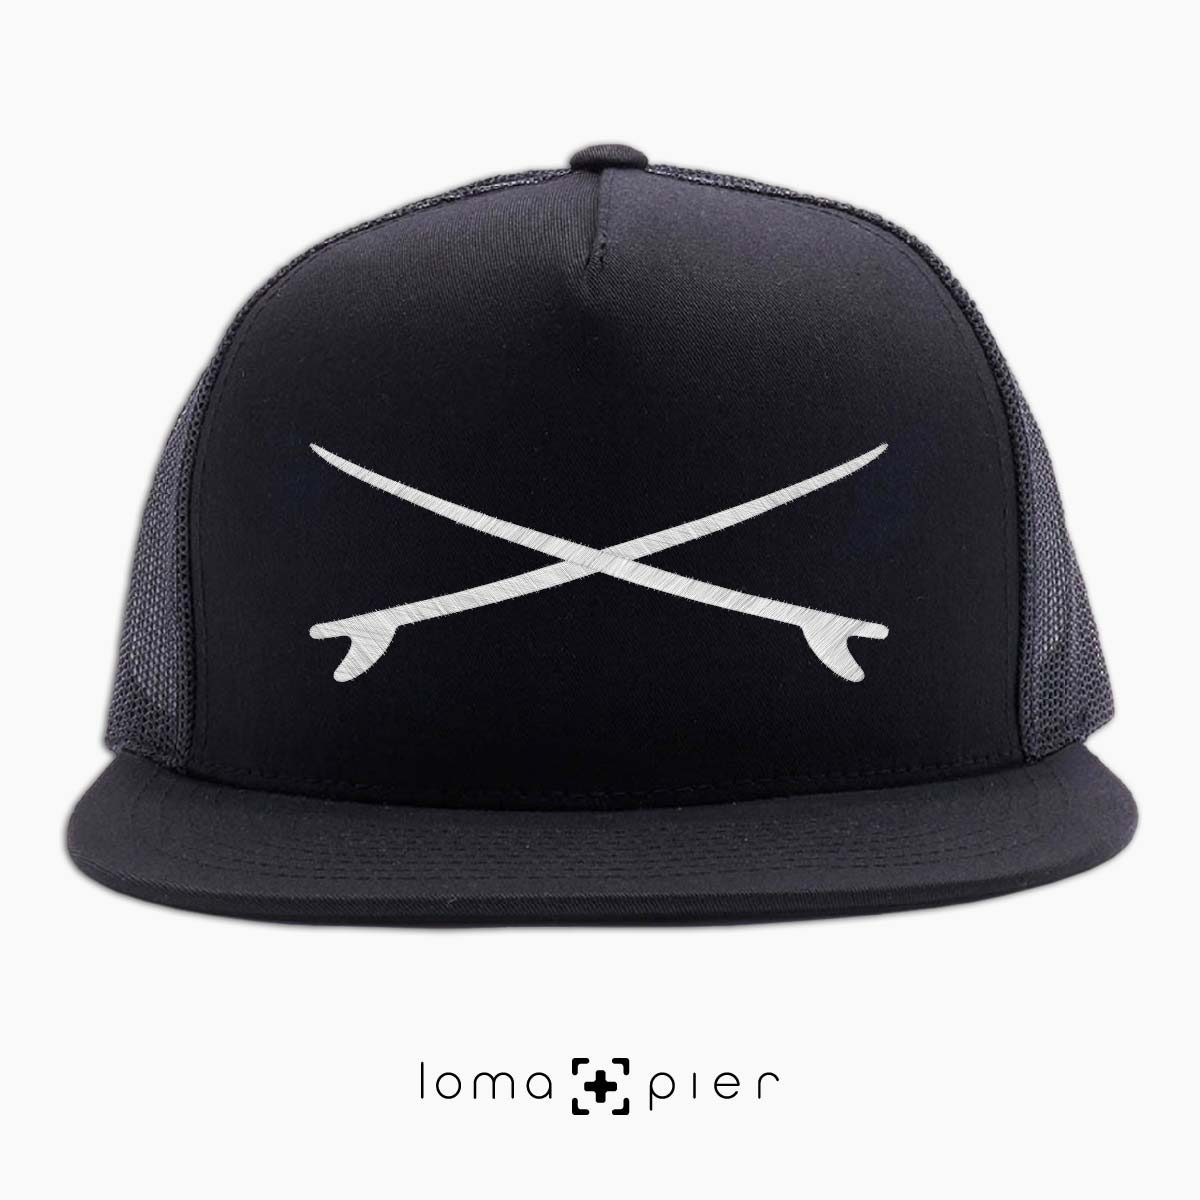 SURFBOARDS el porto beach netback hat in black by loma+pier hat store